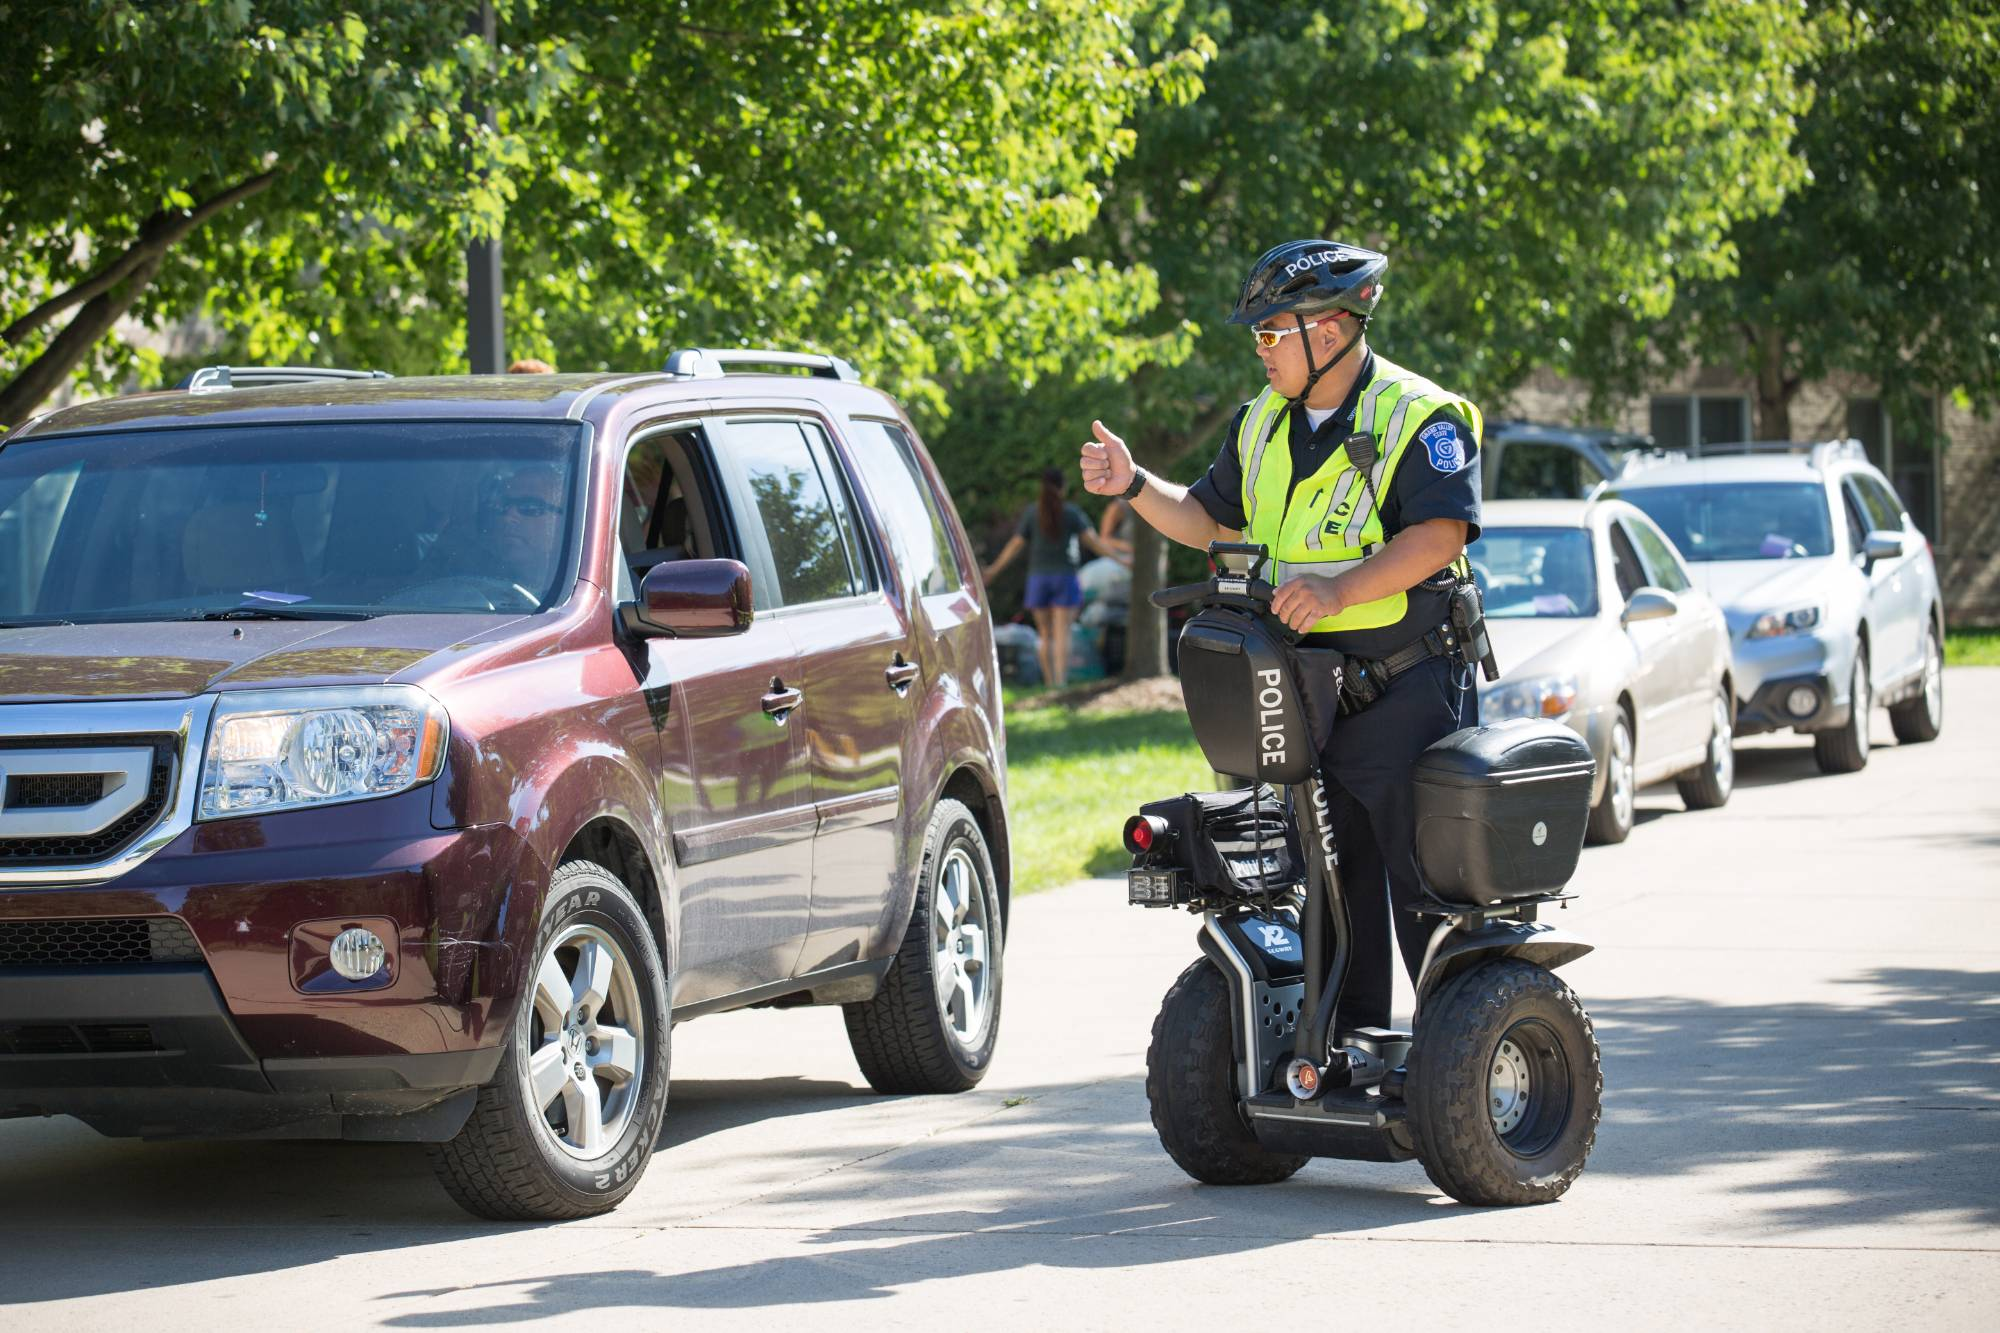 Image of GVSU Police Department member navigating traffic on move-in day